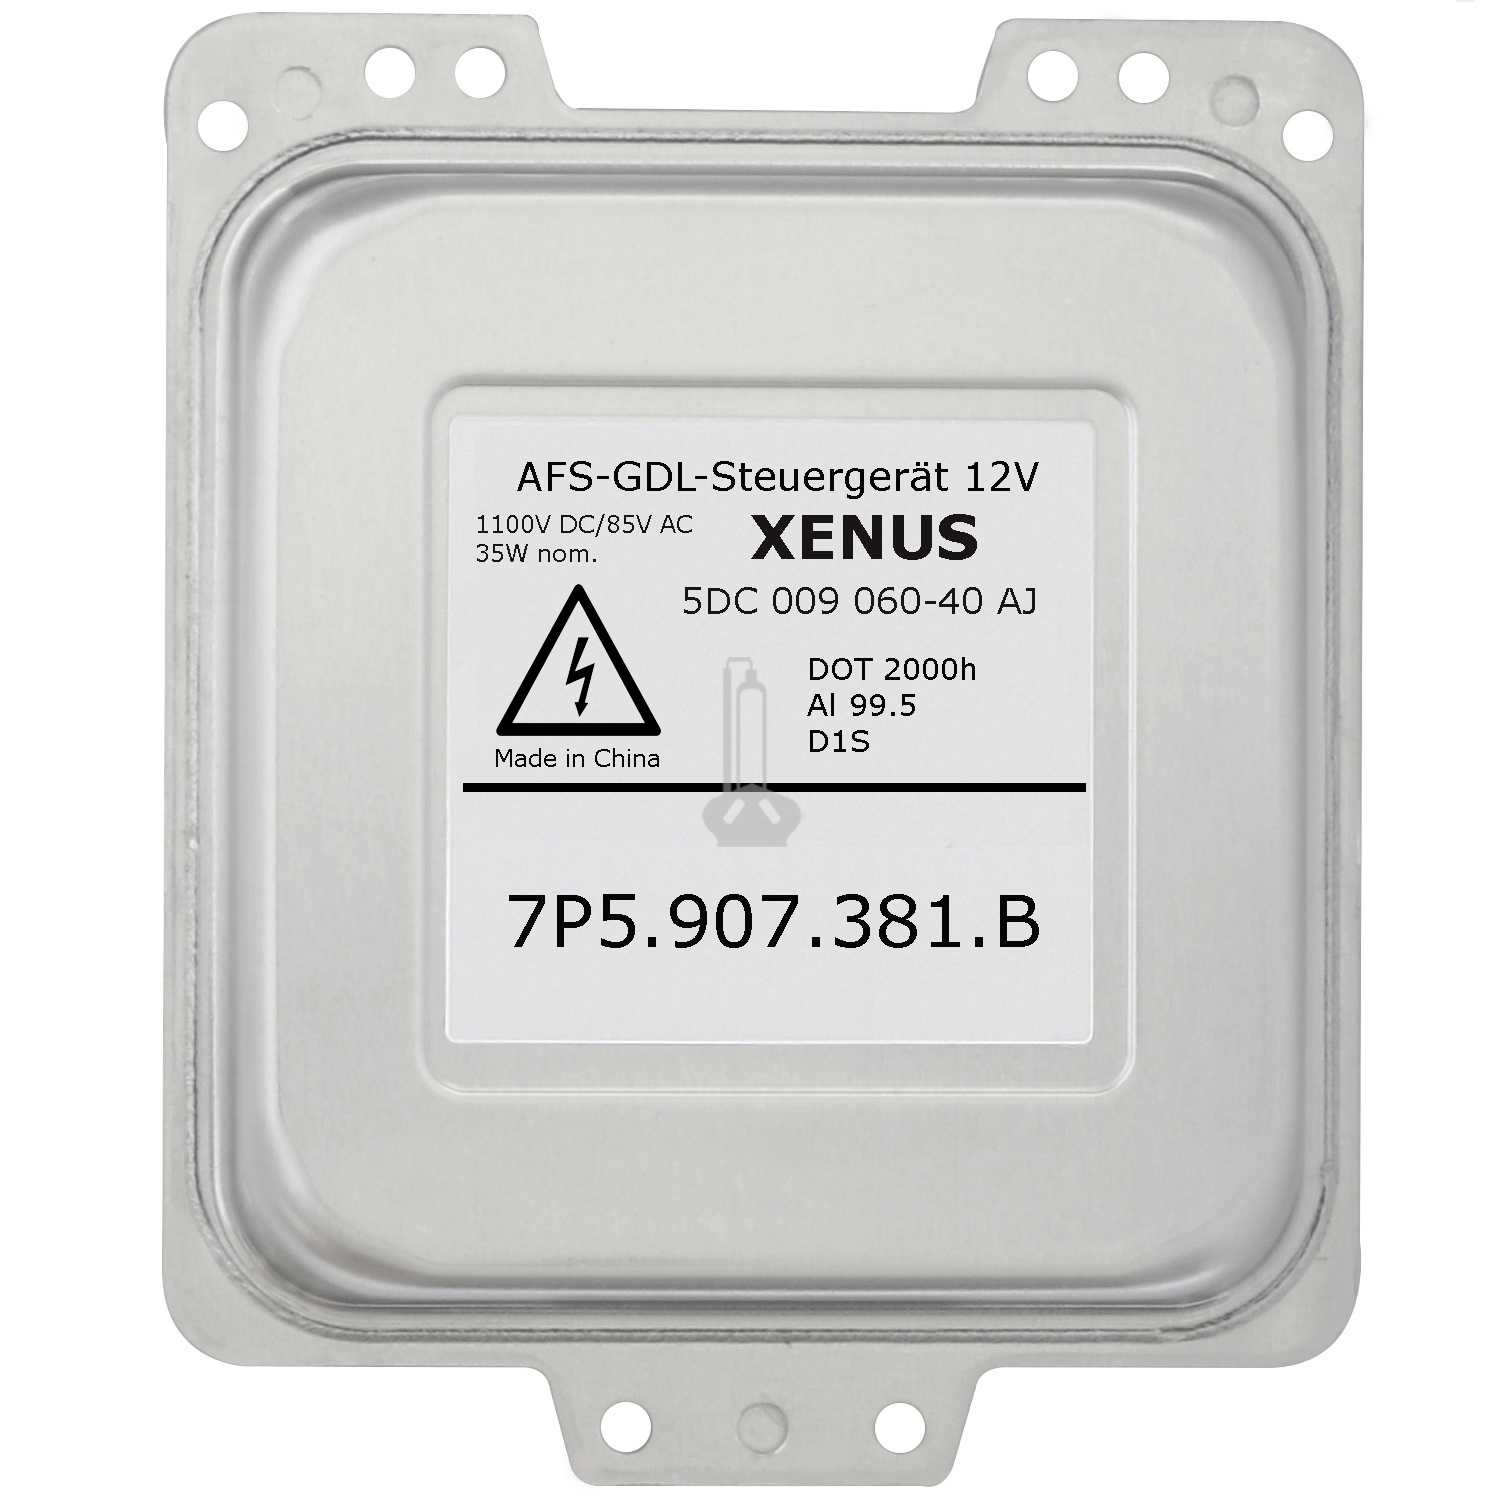 XENUS 5DC 009 060-40 AJ 7P5907381B AFS-GDL Xenon Headlight Ballast Control Unit, Replacement for Hella Porsche Cayenne 958